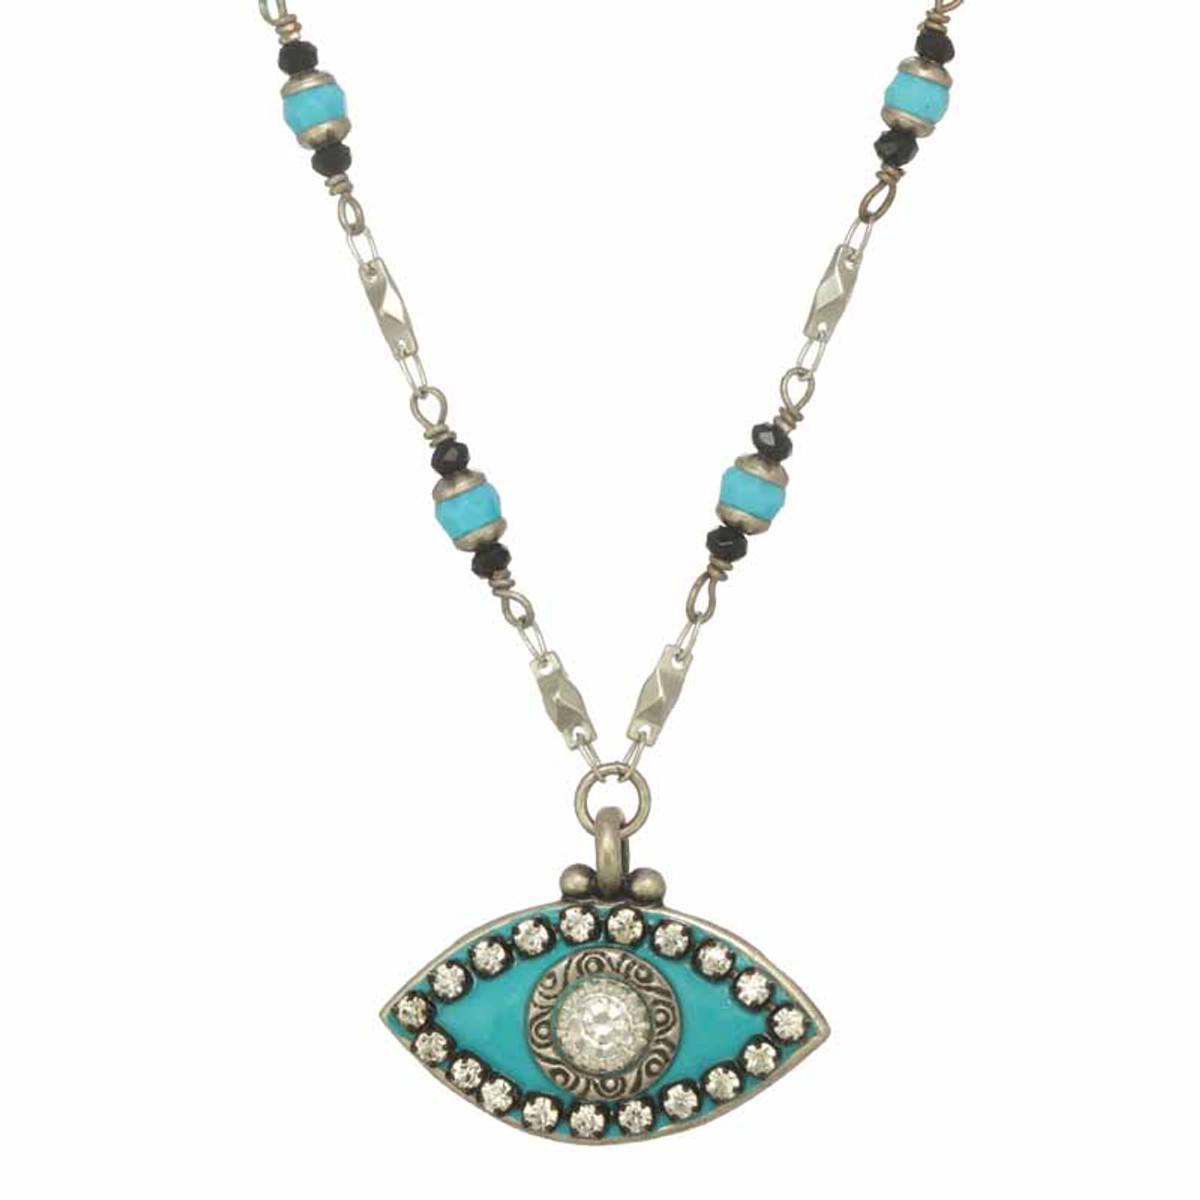 Michal Golan Turquoise and Black Evil Eye Necklace